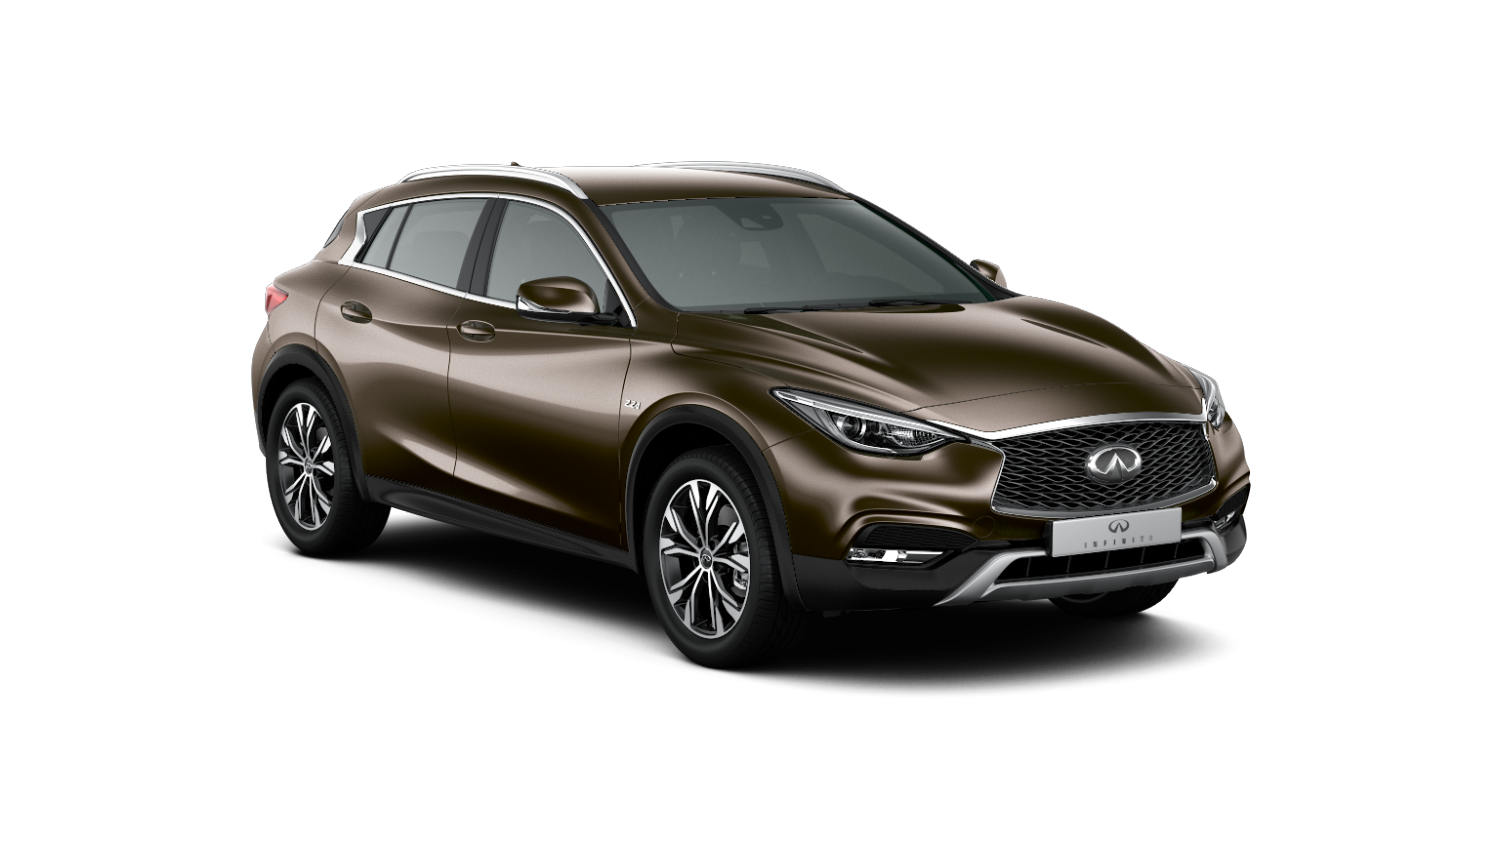 infiniti qx30 car offers new premium active crossover. Black Bedroom Furniture Sets. Home Design Ideas